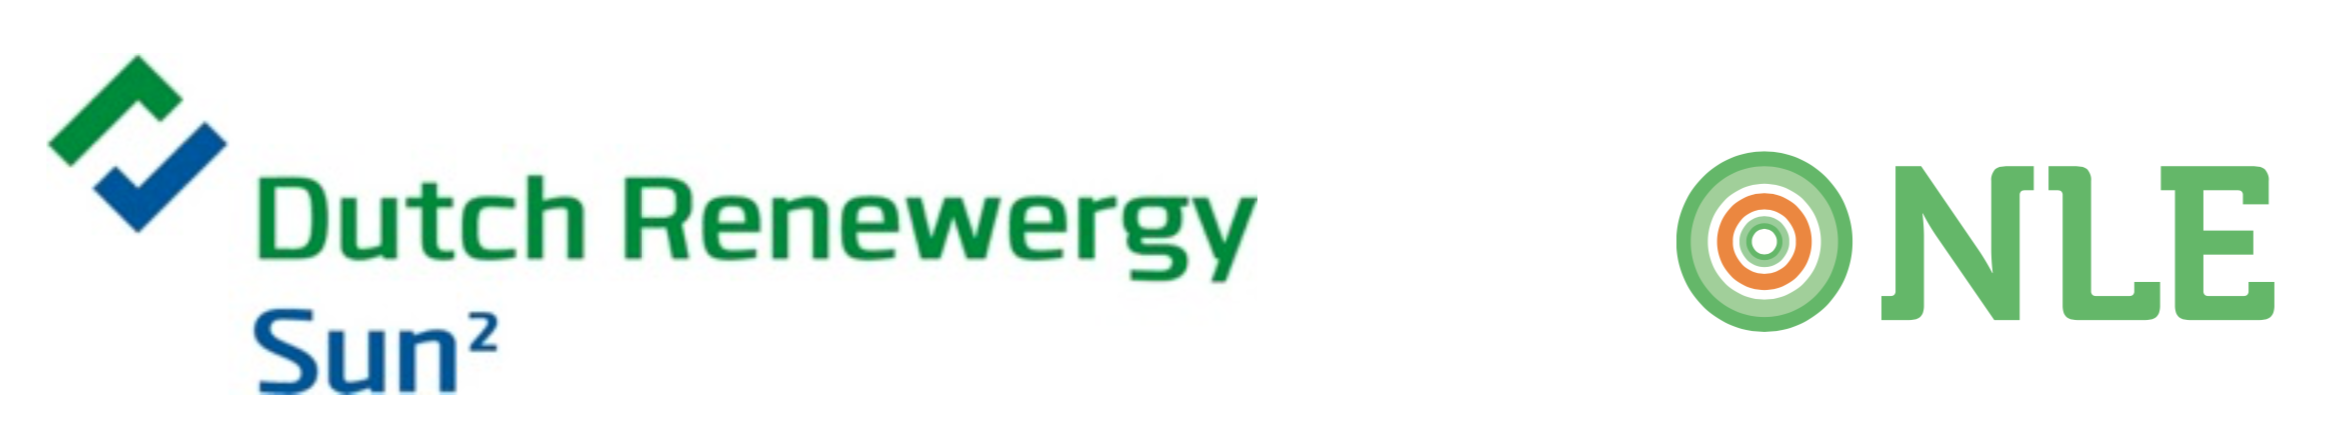 logos dutch renewergy NLE.png